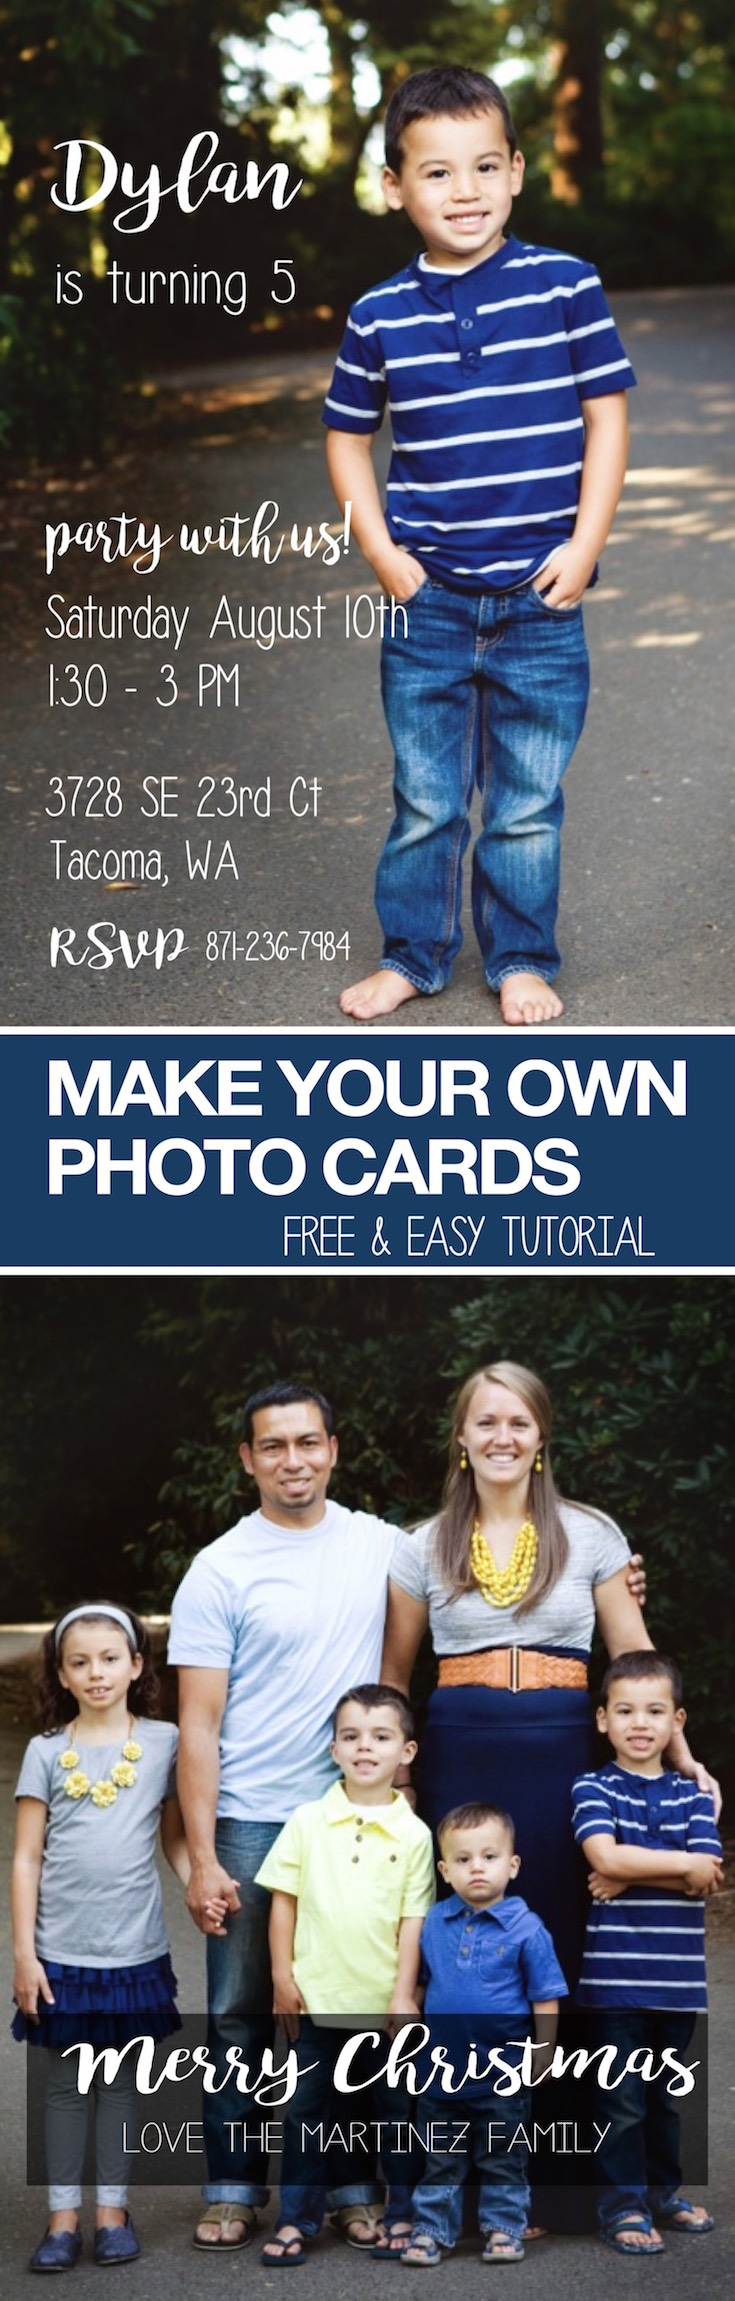 How To Make Photo Cards Or Invitations Diy Paper Trail Design